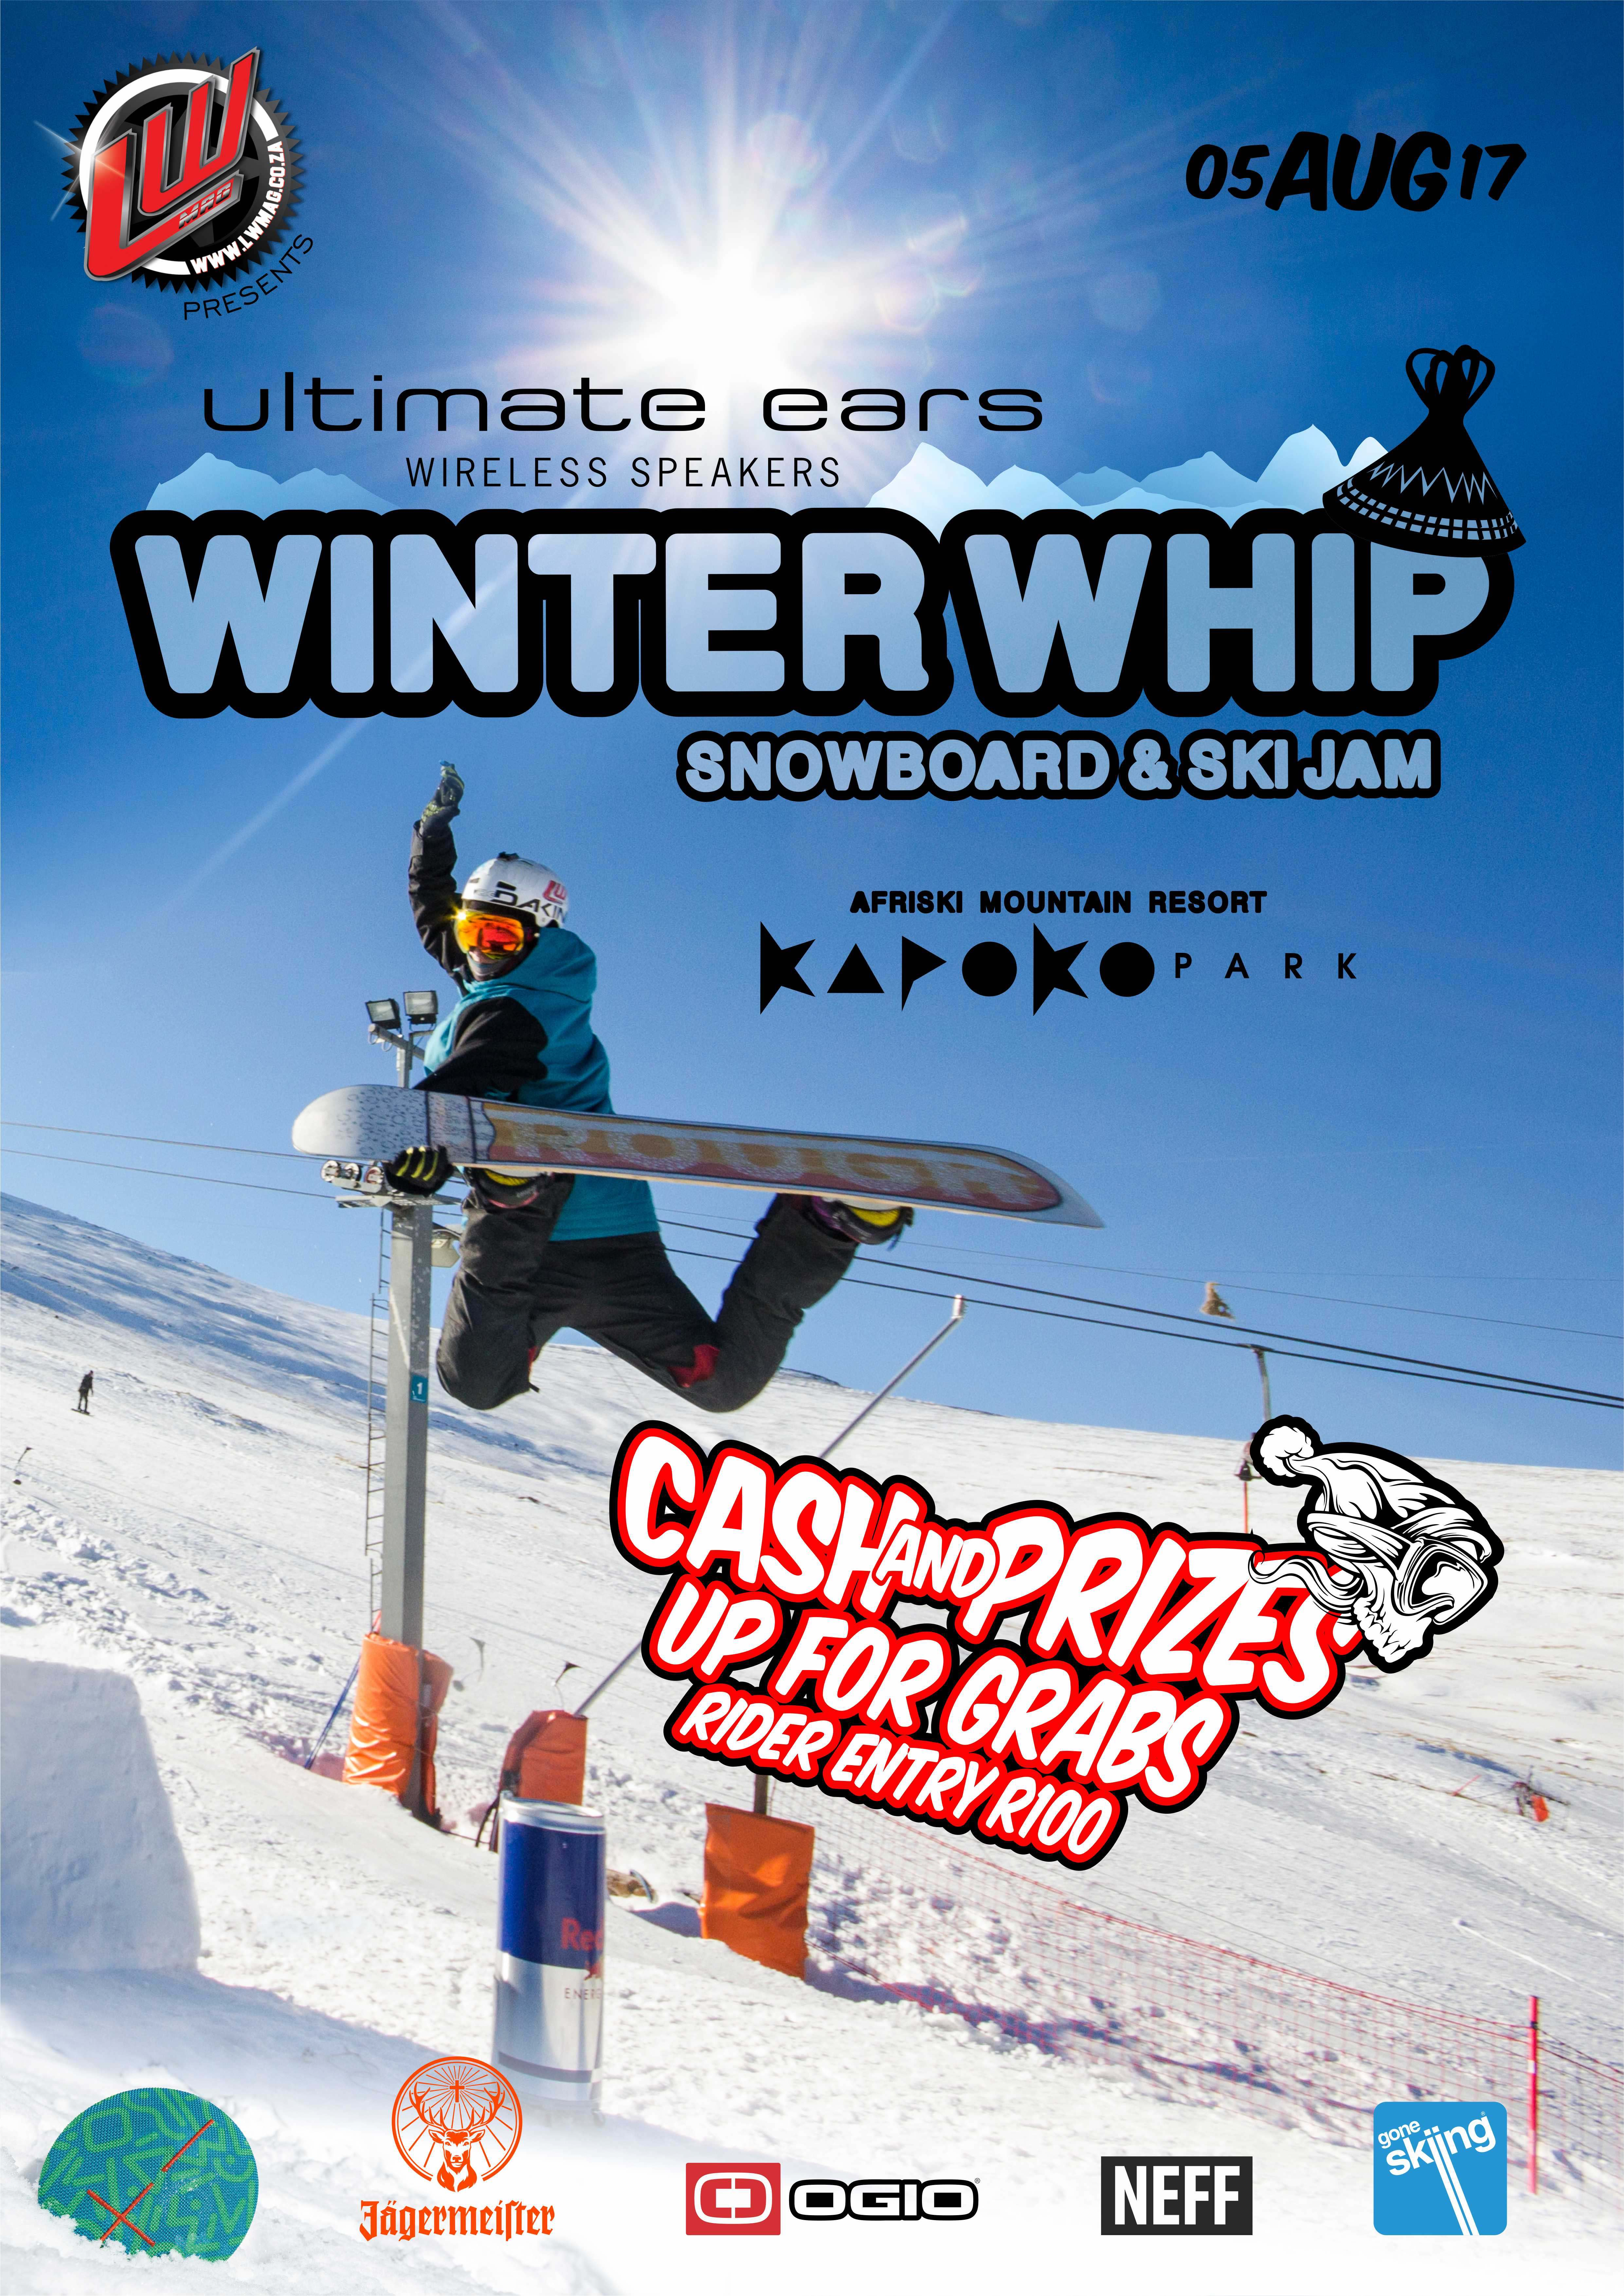 Southern Africa's premier Snowboarding and Skiing Slopestyle competition is back, announcing the 2017 Ultimate Ears Winter Whip taking place at Afriski in Lesotho.